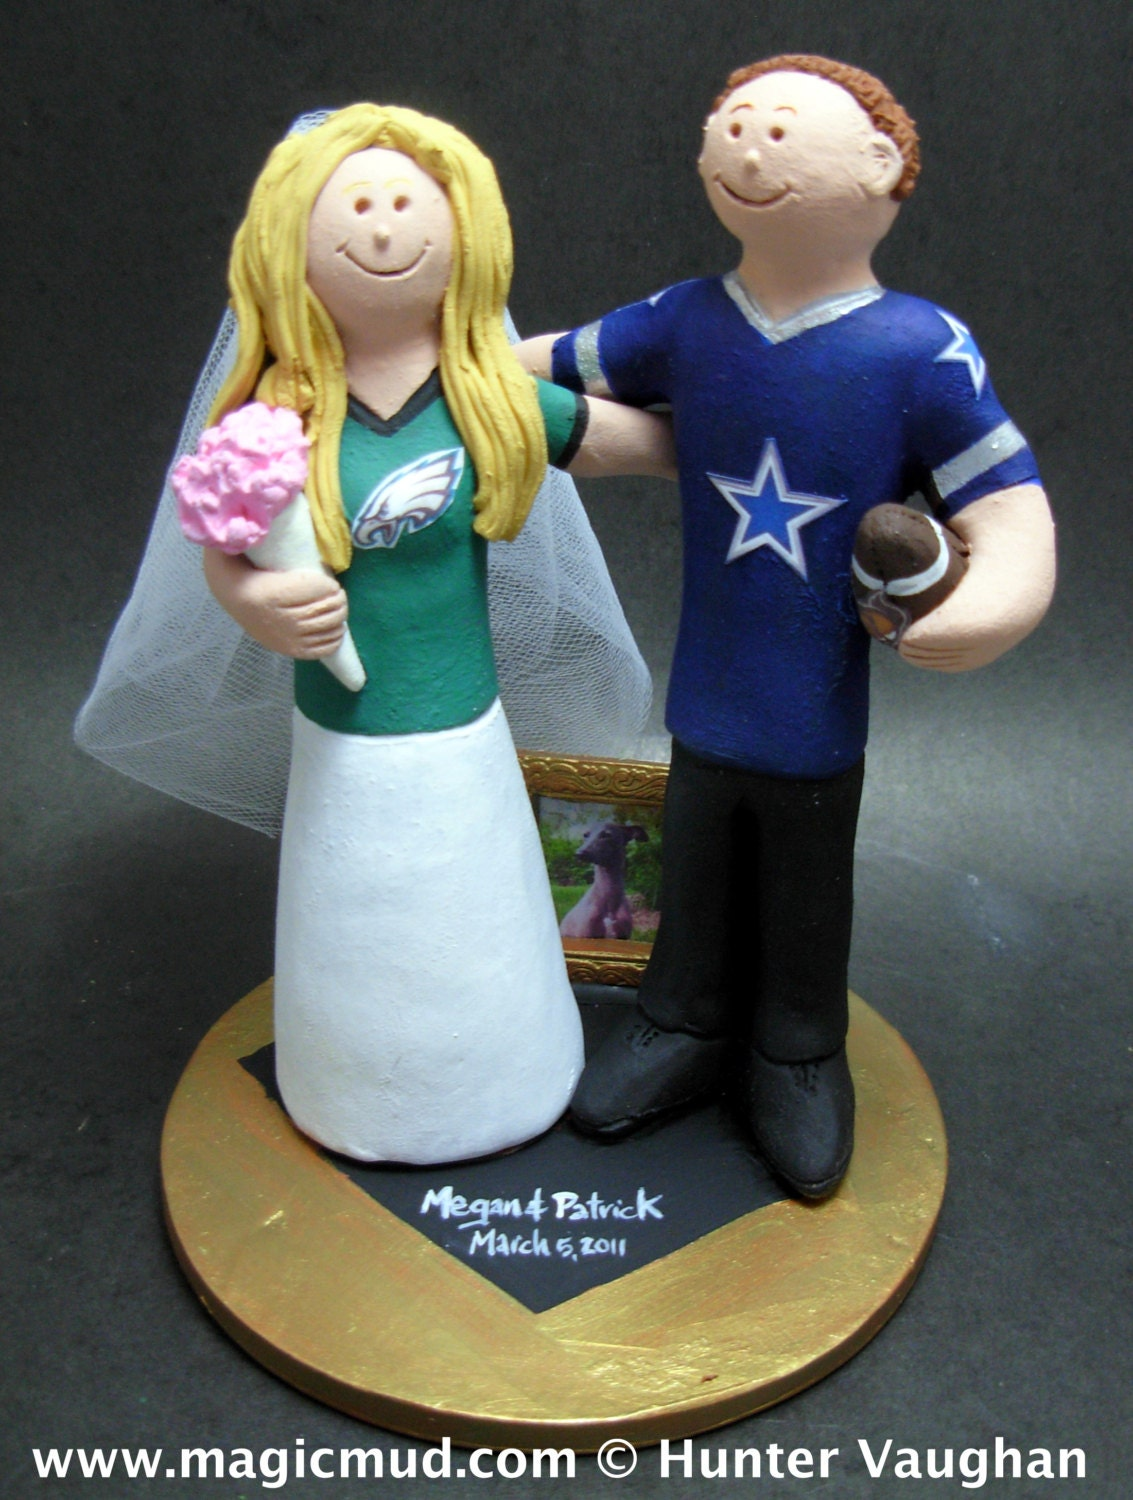 ... Football Team Bride and Groom Wedding Cake Topper. gallery photo ... 1bbdc9f12